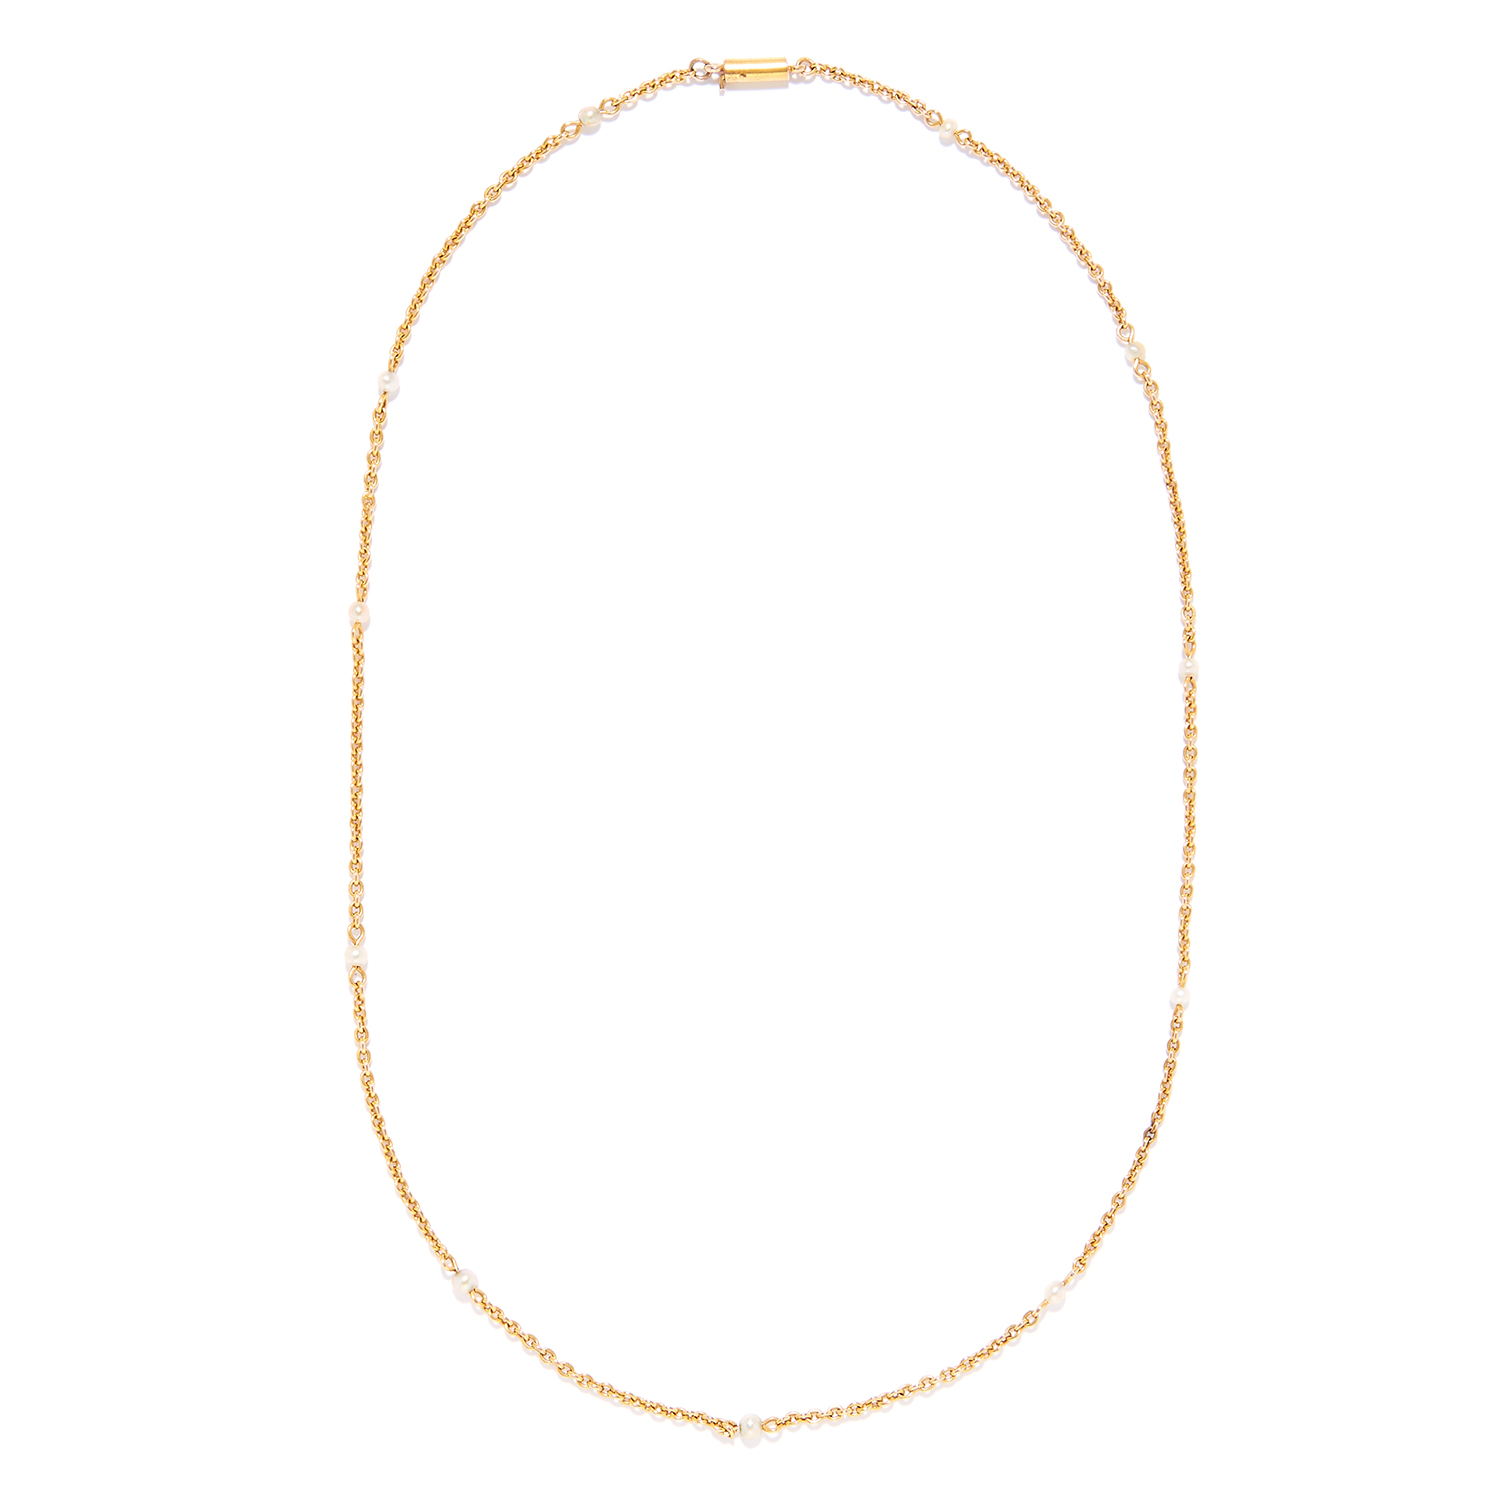 AN ANTIQUE PEARL NECKLACE in high carat yellow gold, set with eleven pearls on a gold chain,